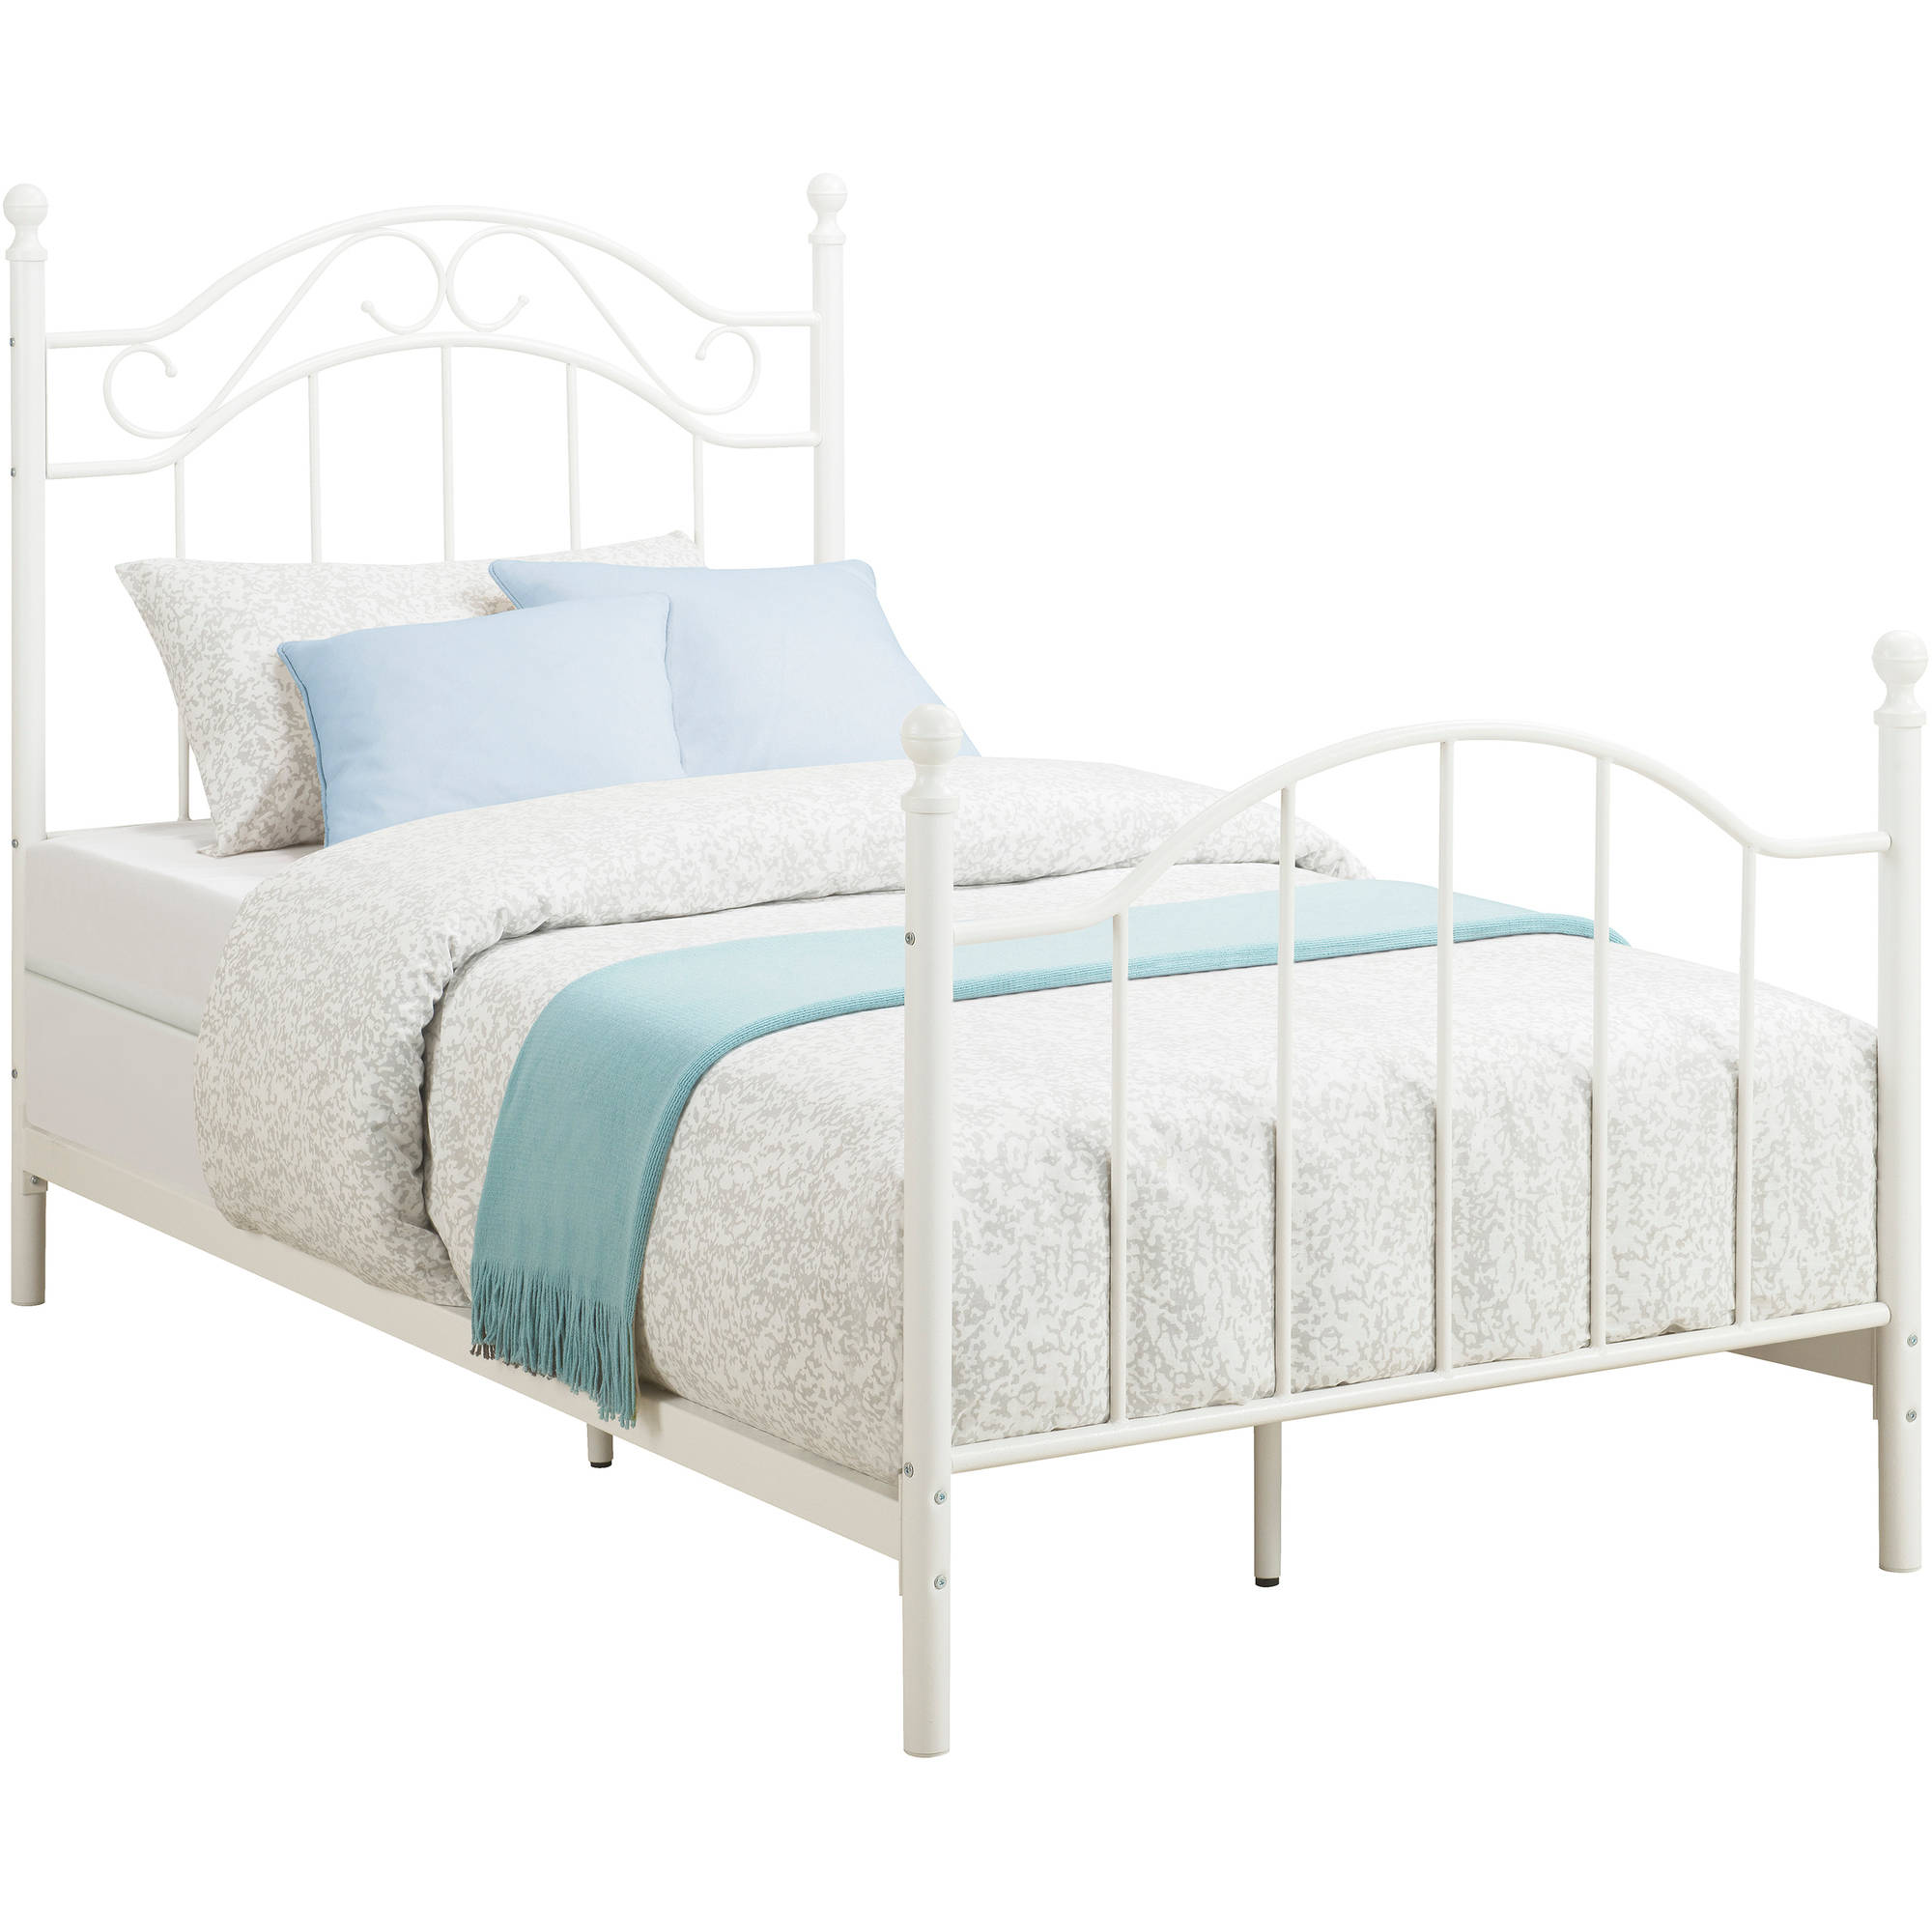 Mainstays Twin Metal Bed - Walmart.com